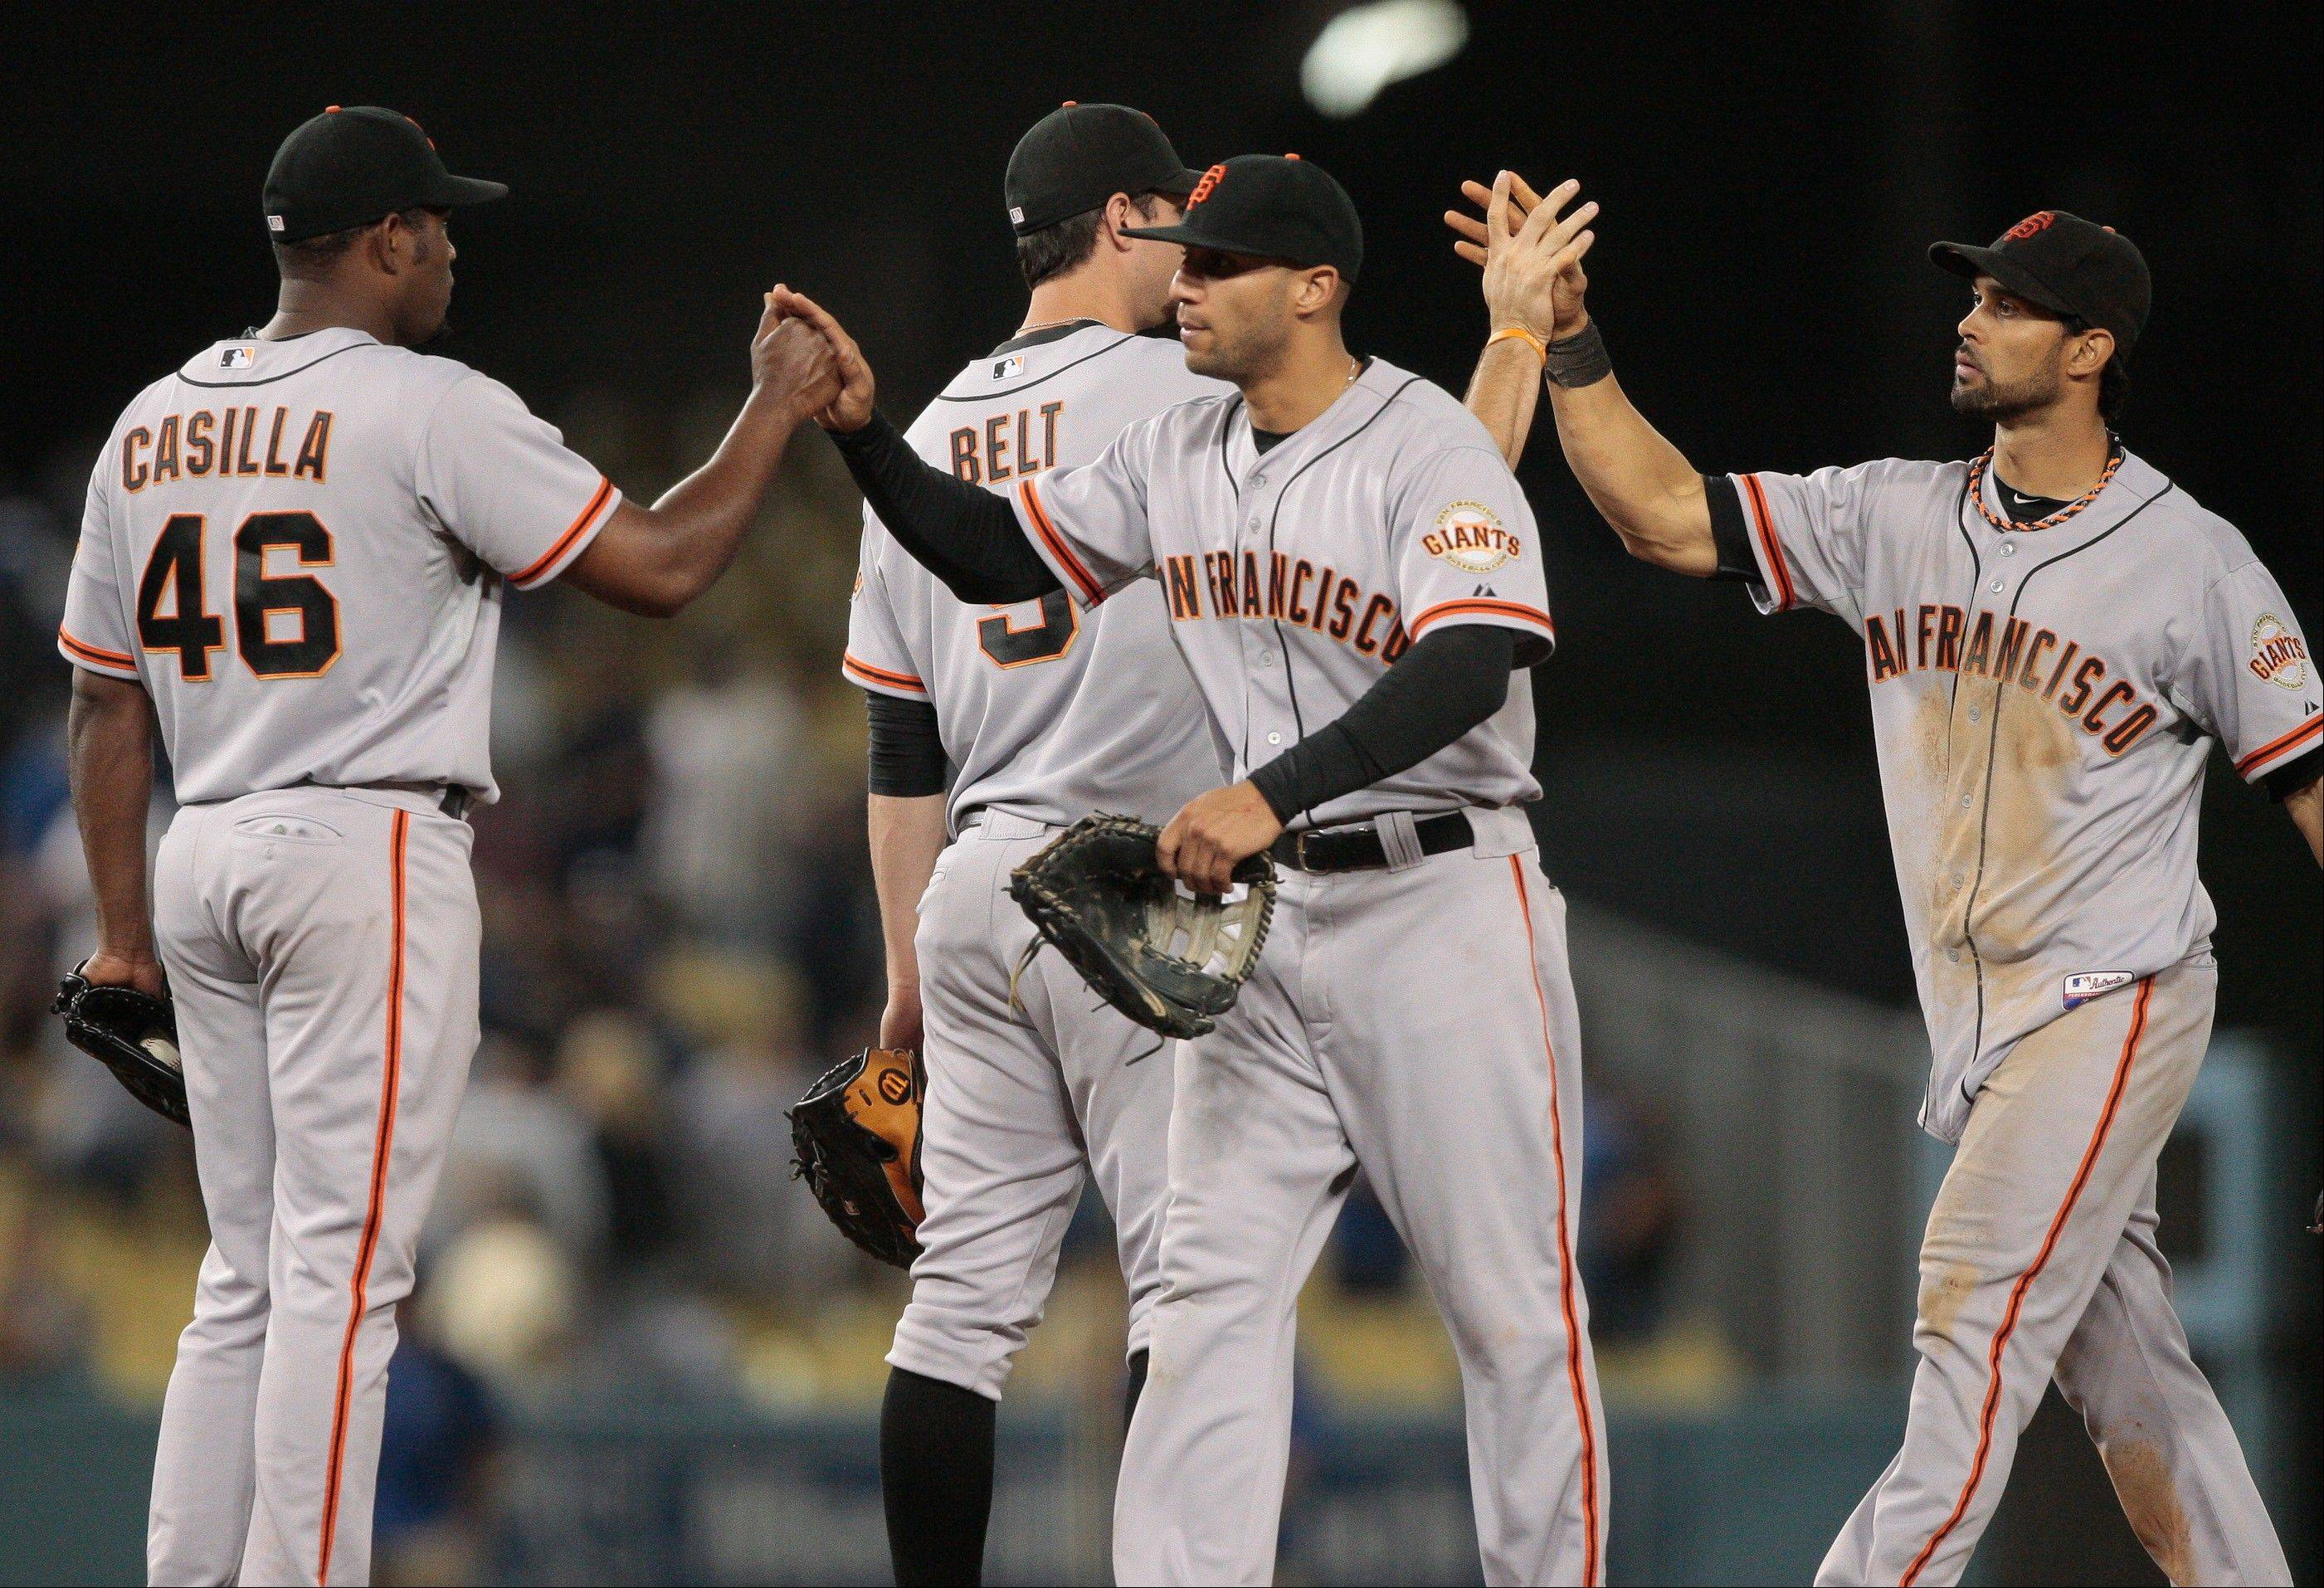 San Francisco closer Santiago Casilla (46) celebrates with teammates after defeating the Dodgers 8-4 on Wednesday in Los Angeles.